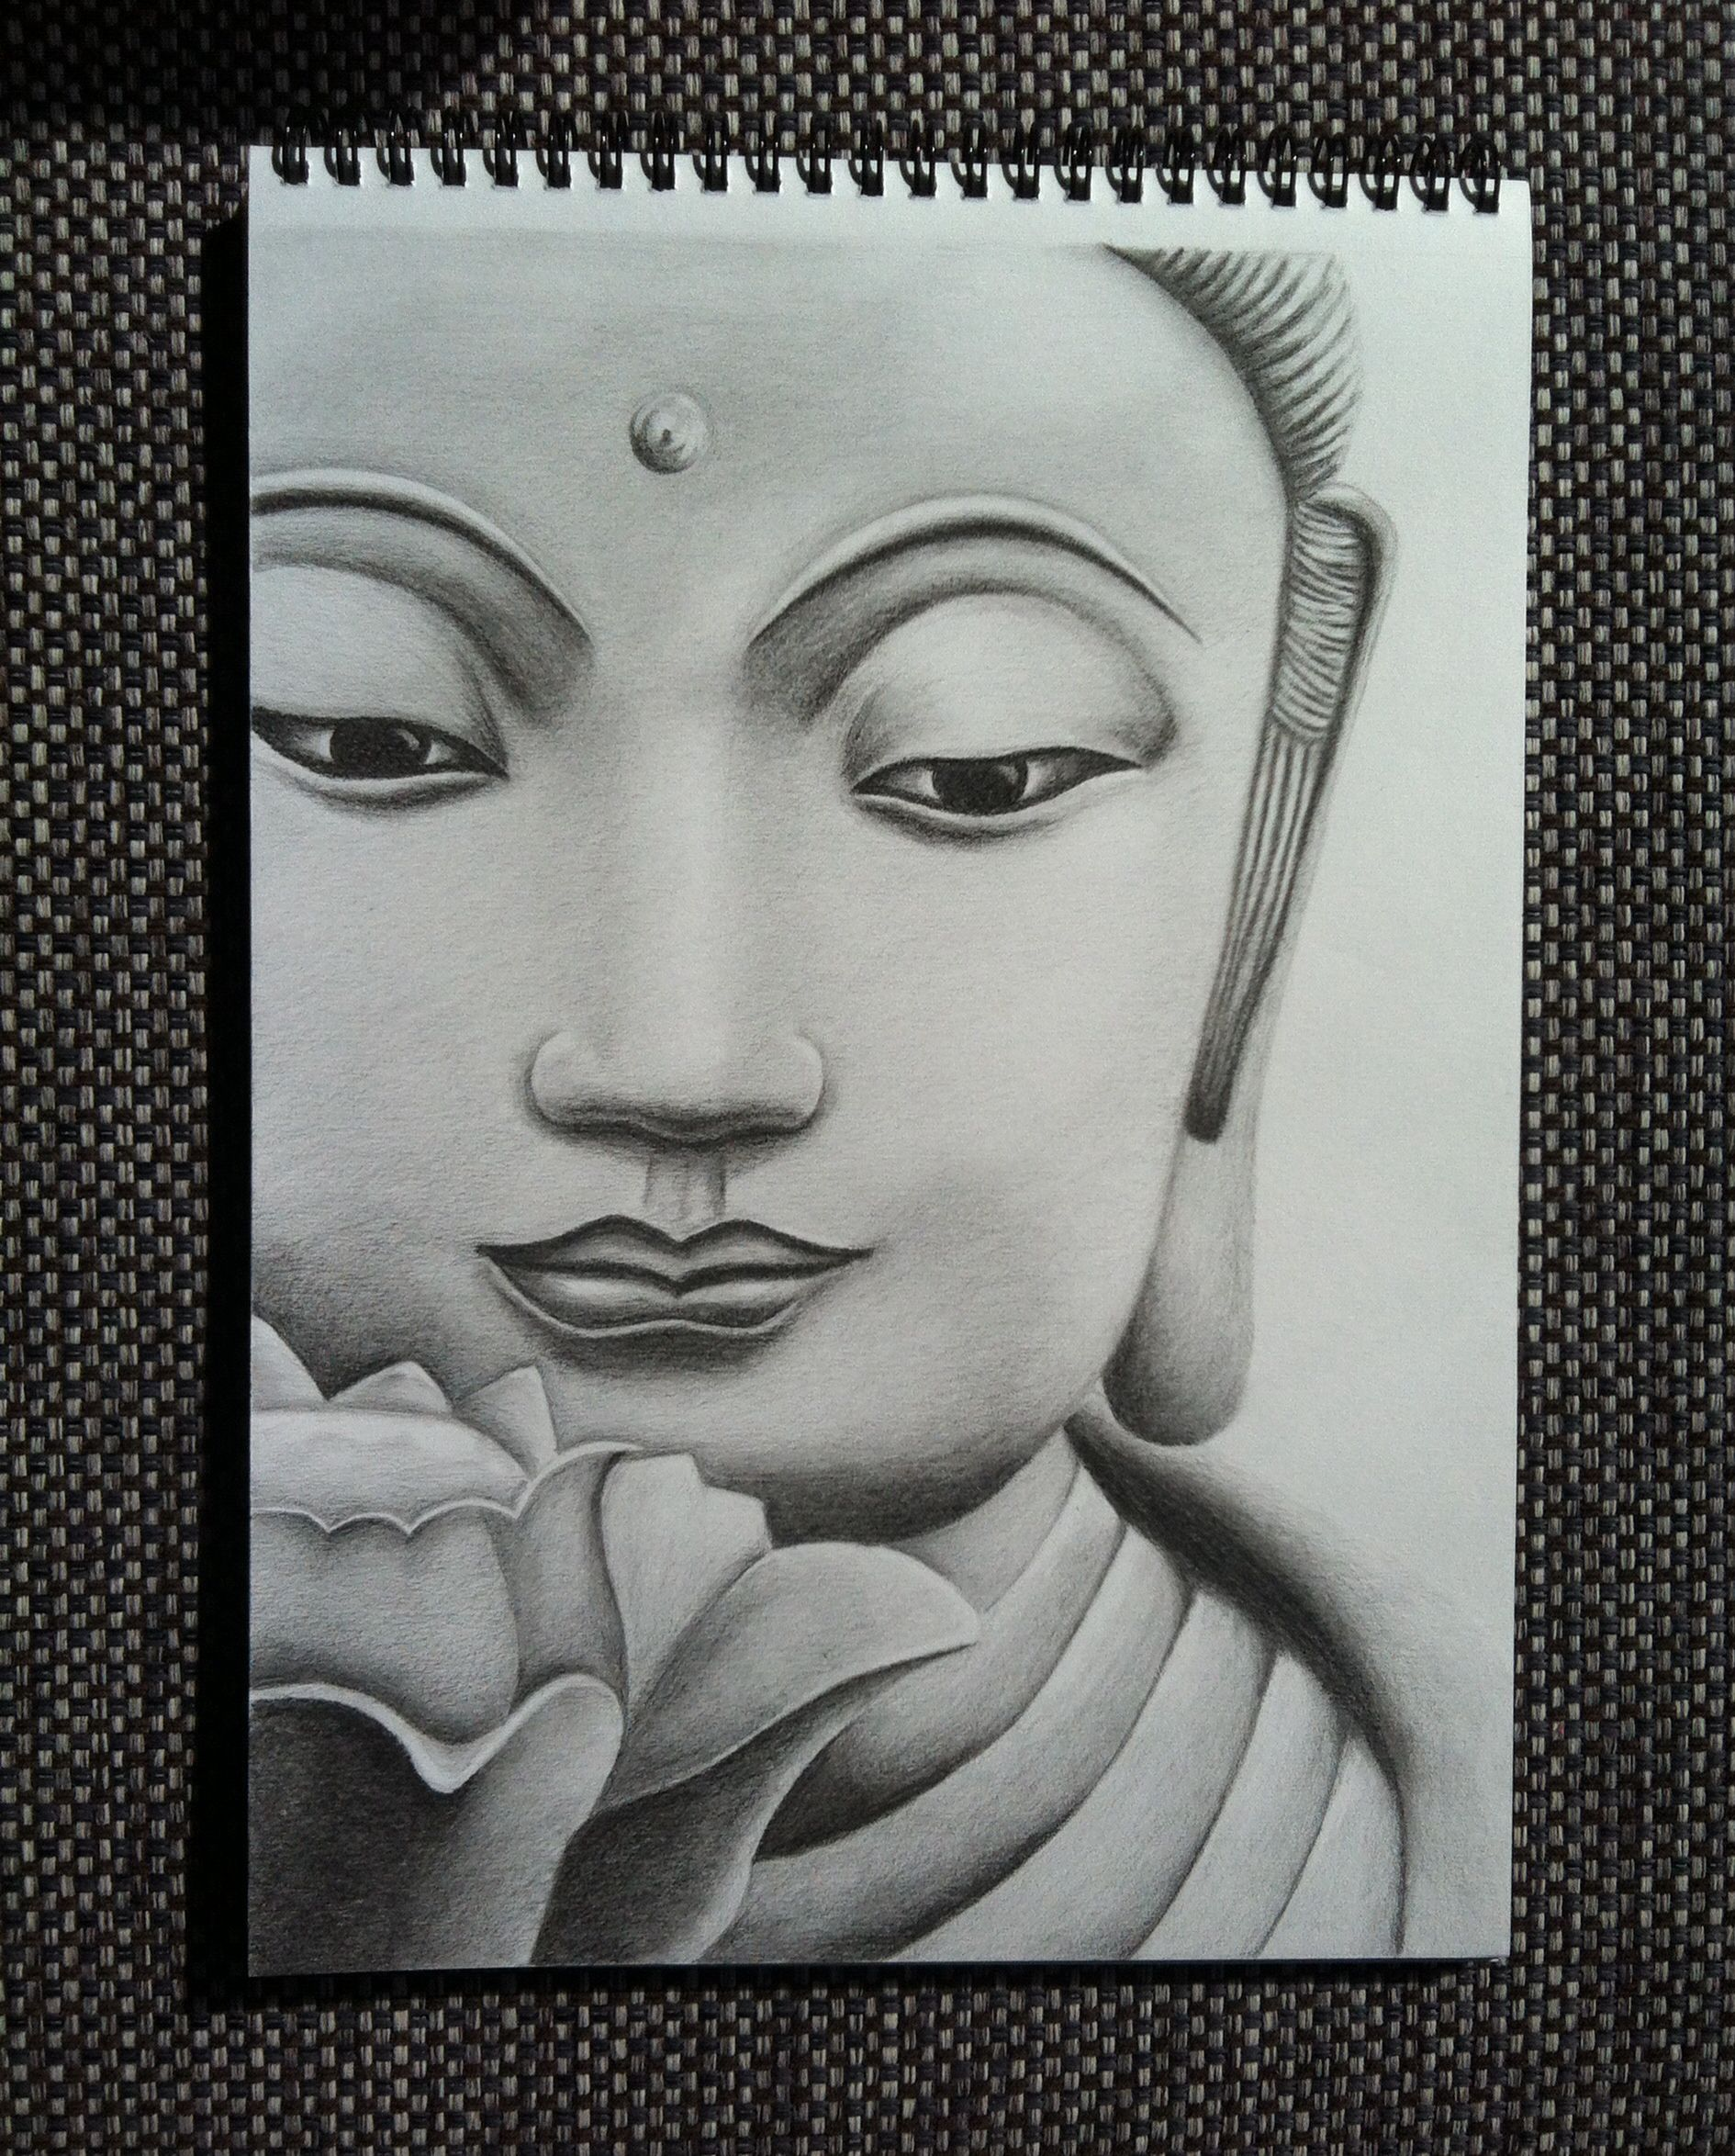 Pencil sketches of gautam buddha